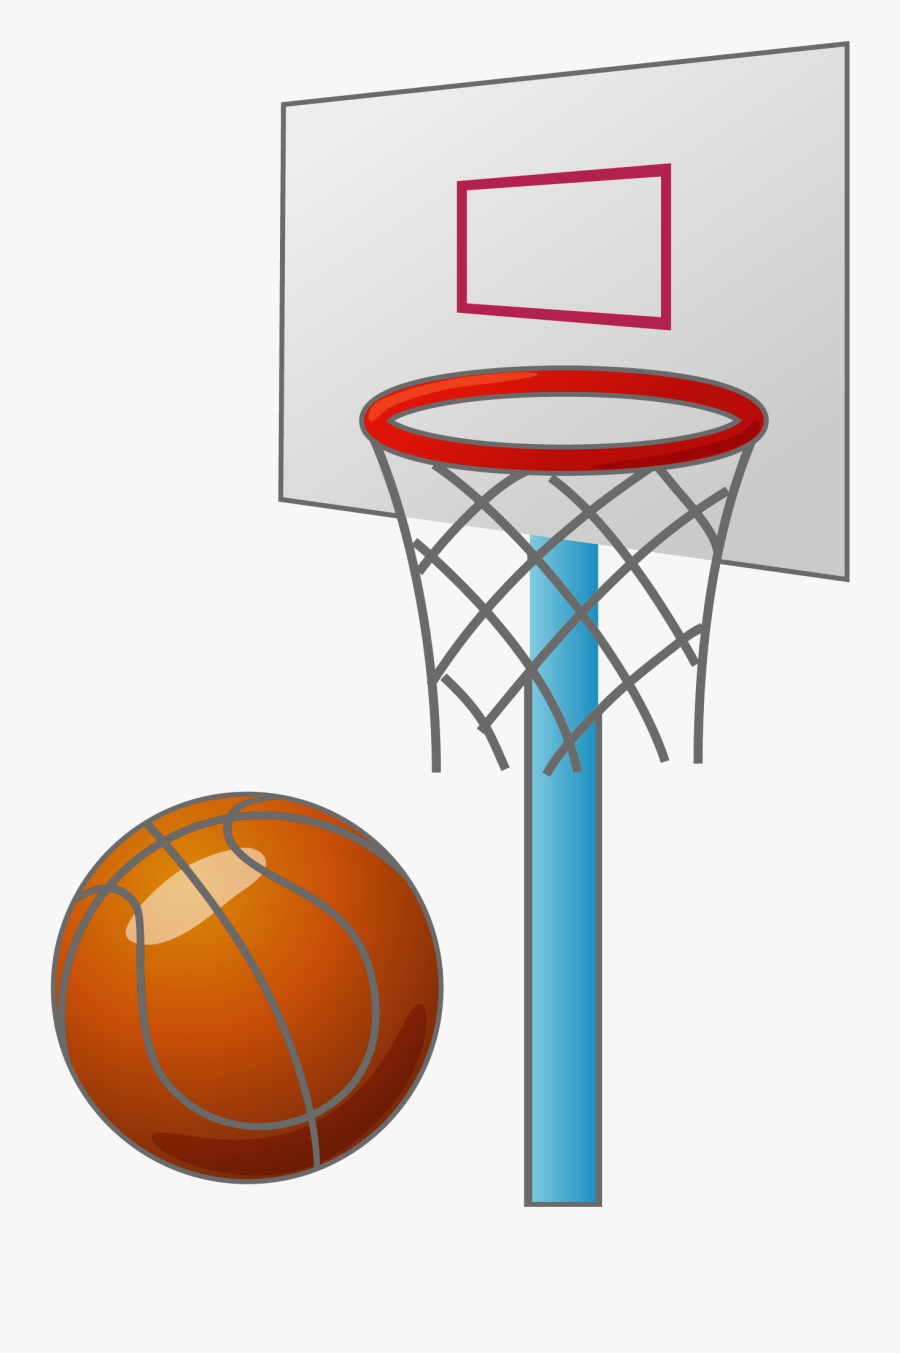 Cartoon Basketball Backboard Basketball Court.